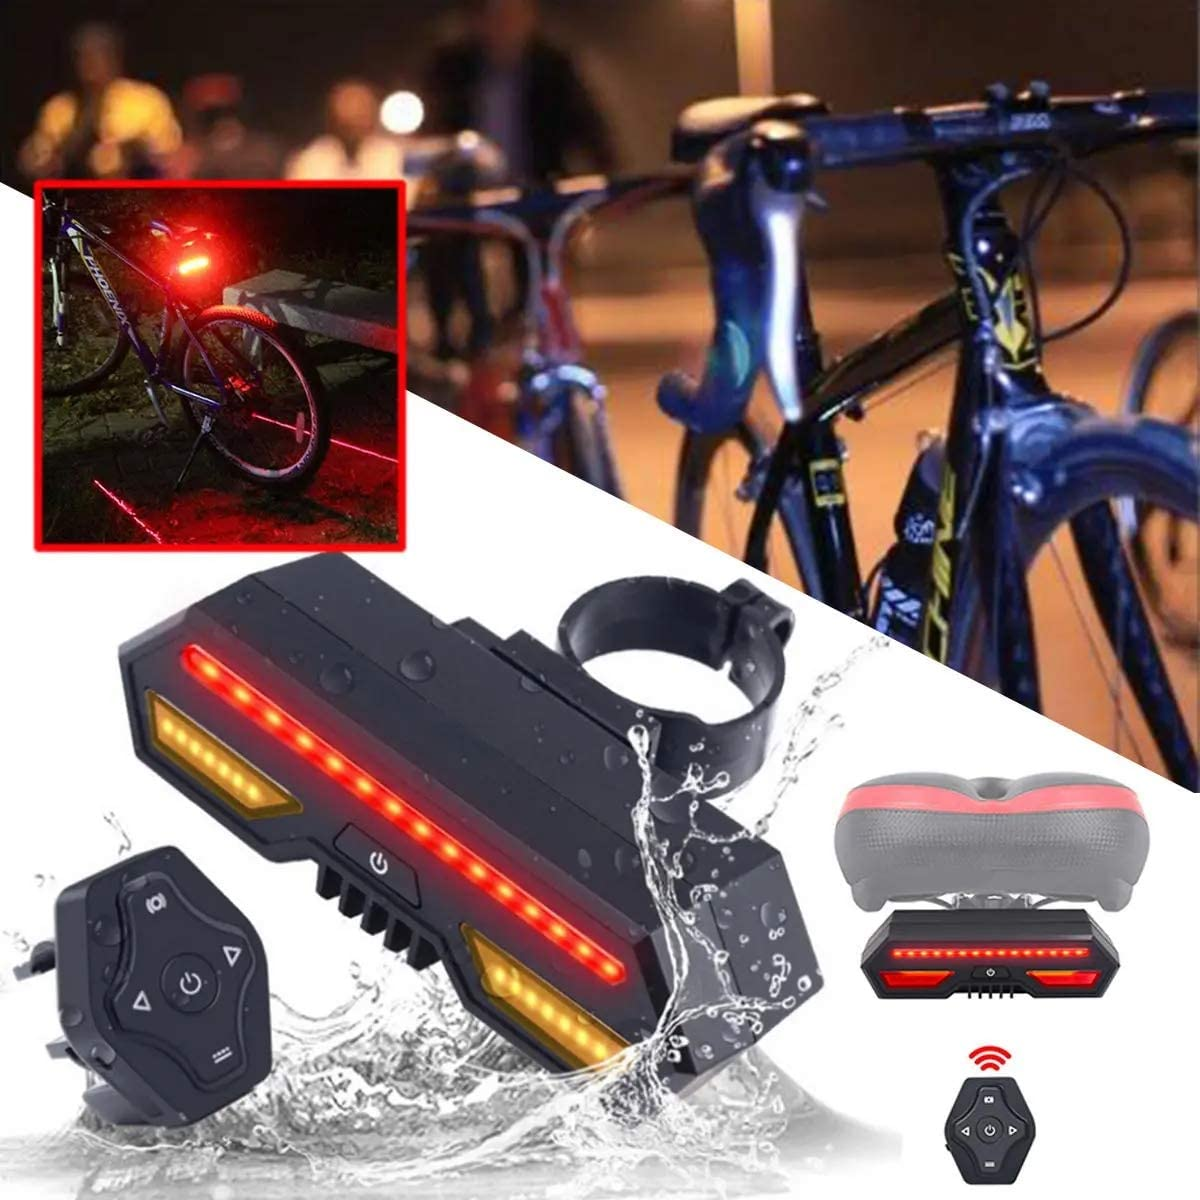 ZMX Bicycle Tail online shopping Light Remote Indicator Control Signal LED Turn mart